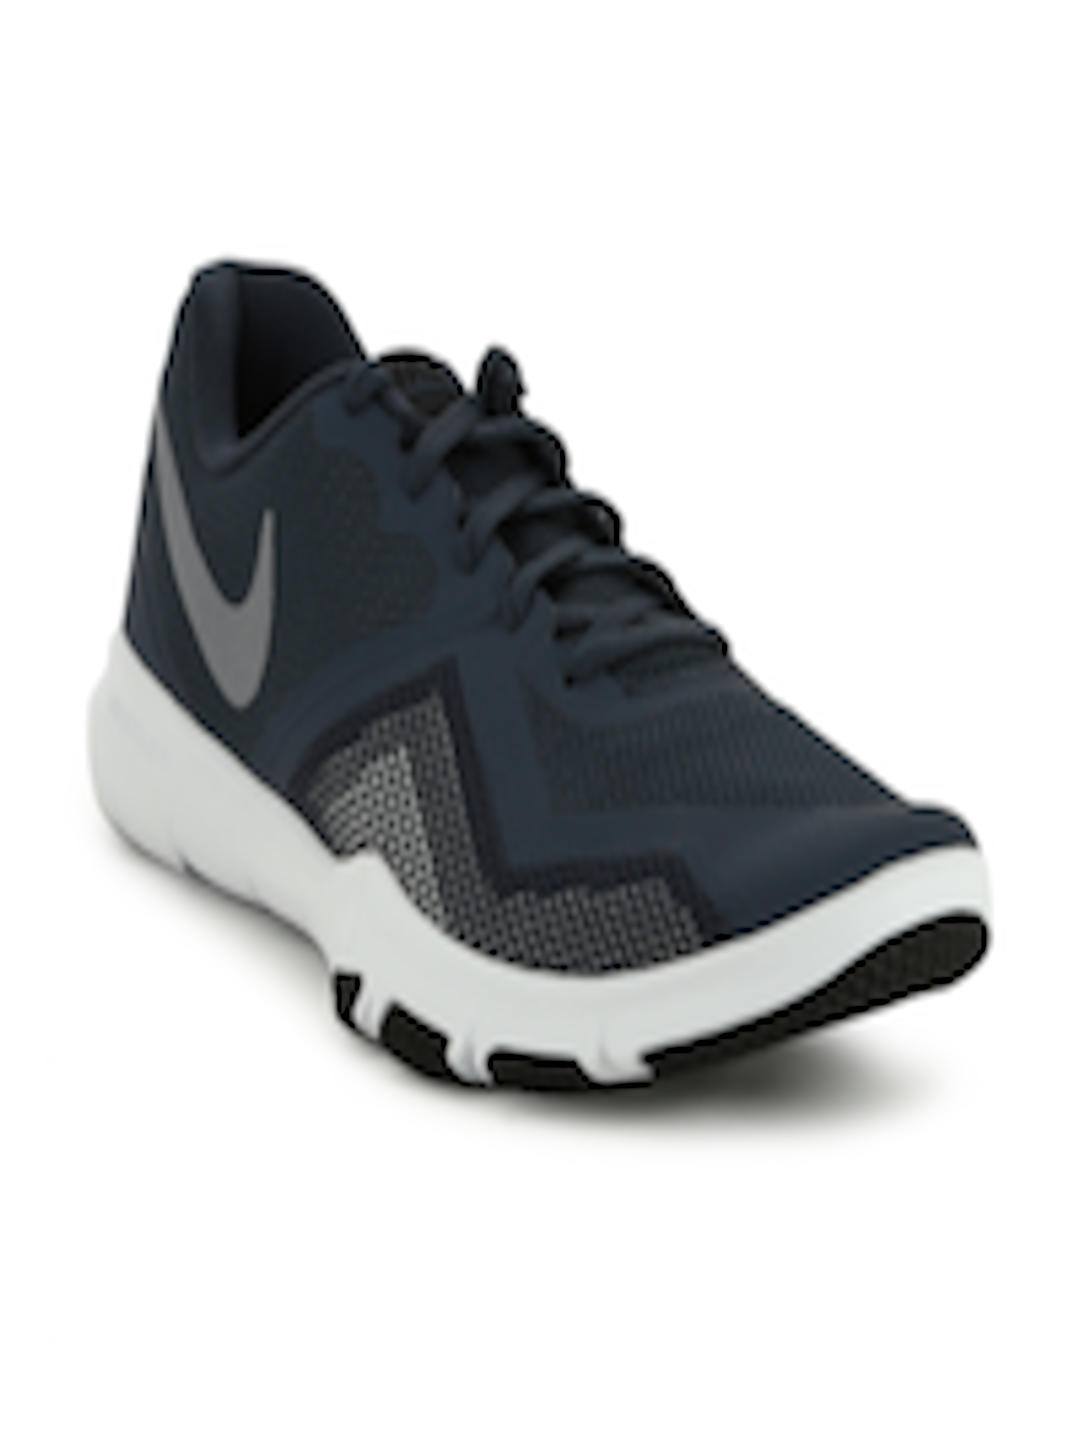 9c7b203e68cfb Buy Nike Men Navy Blue FLEX CONTROL II Training Shoes - Sports Shoes for  Men 2375706